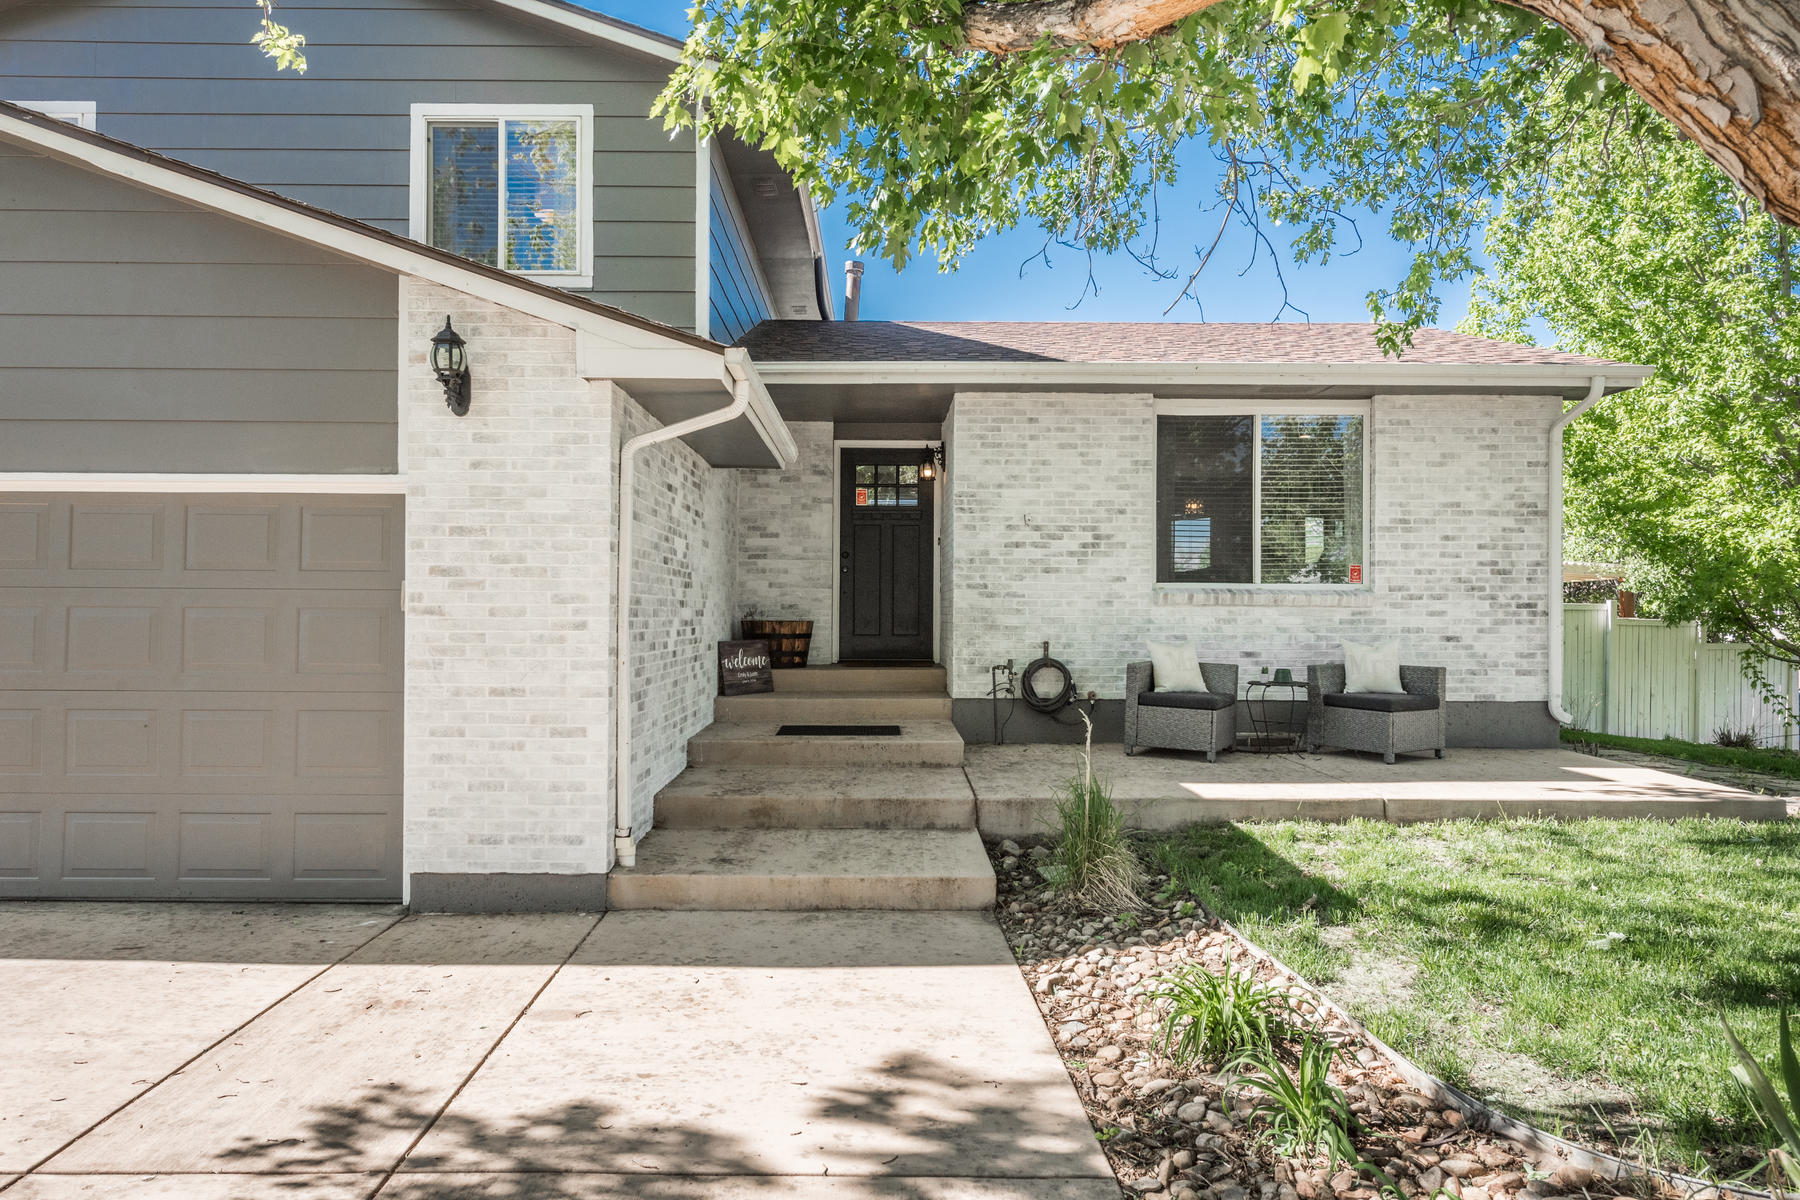 Single Family Homes for Sale at Amazing Firestone Find 206 Florence Ave Firestone, Colorado 80520 United States